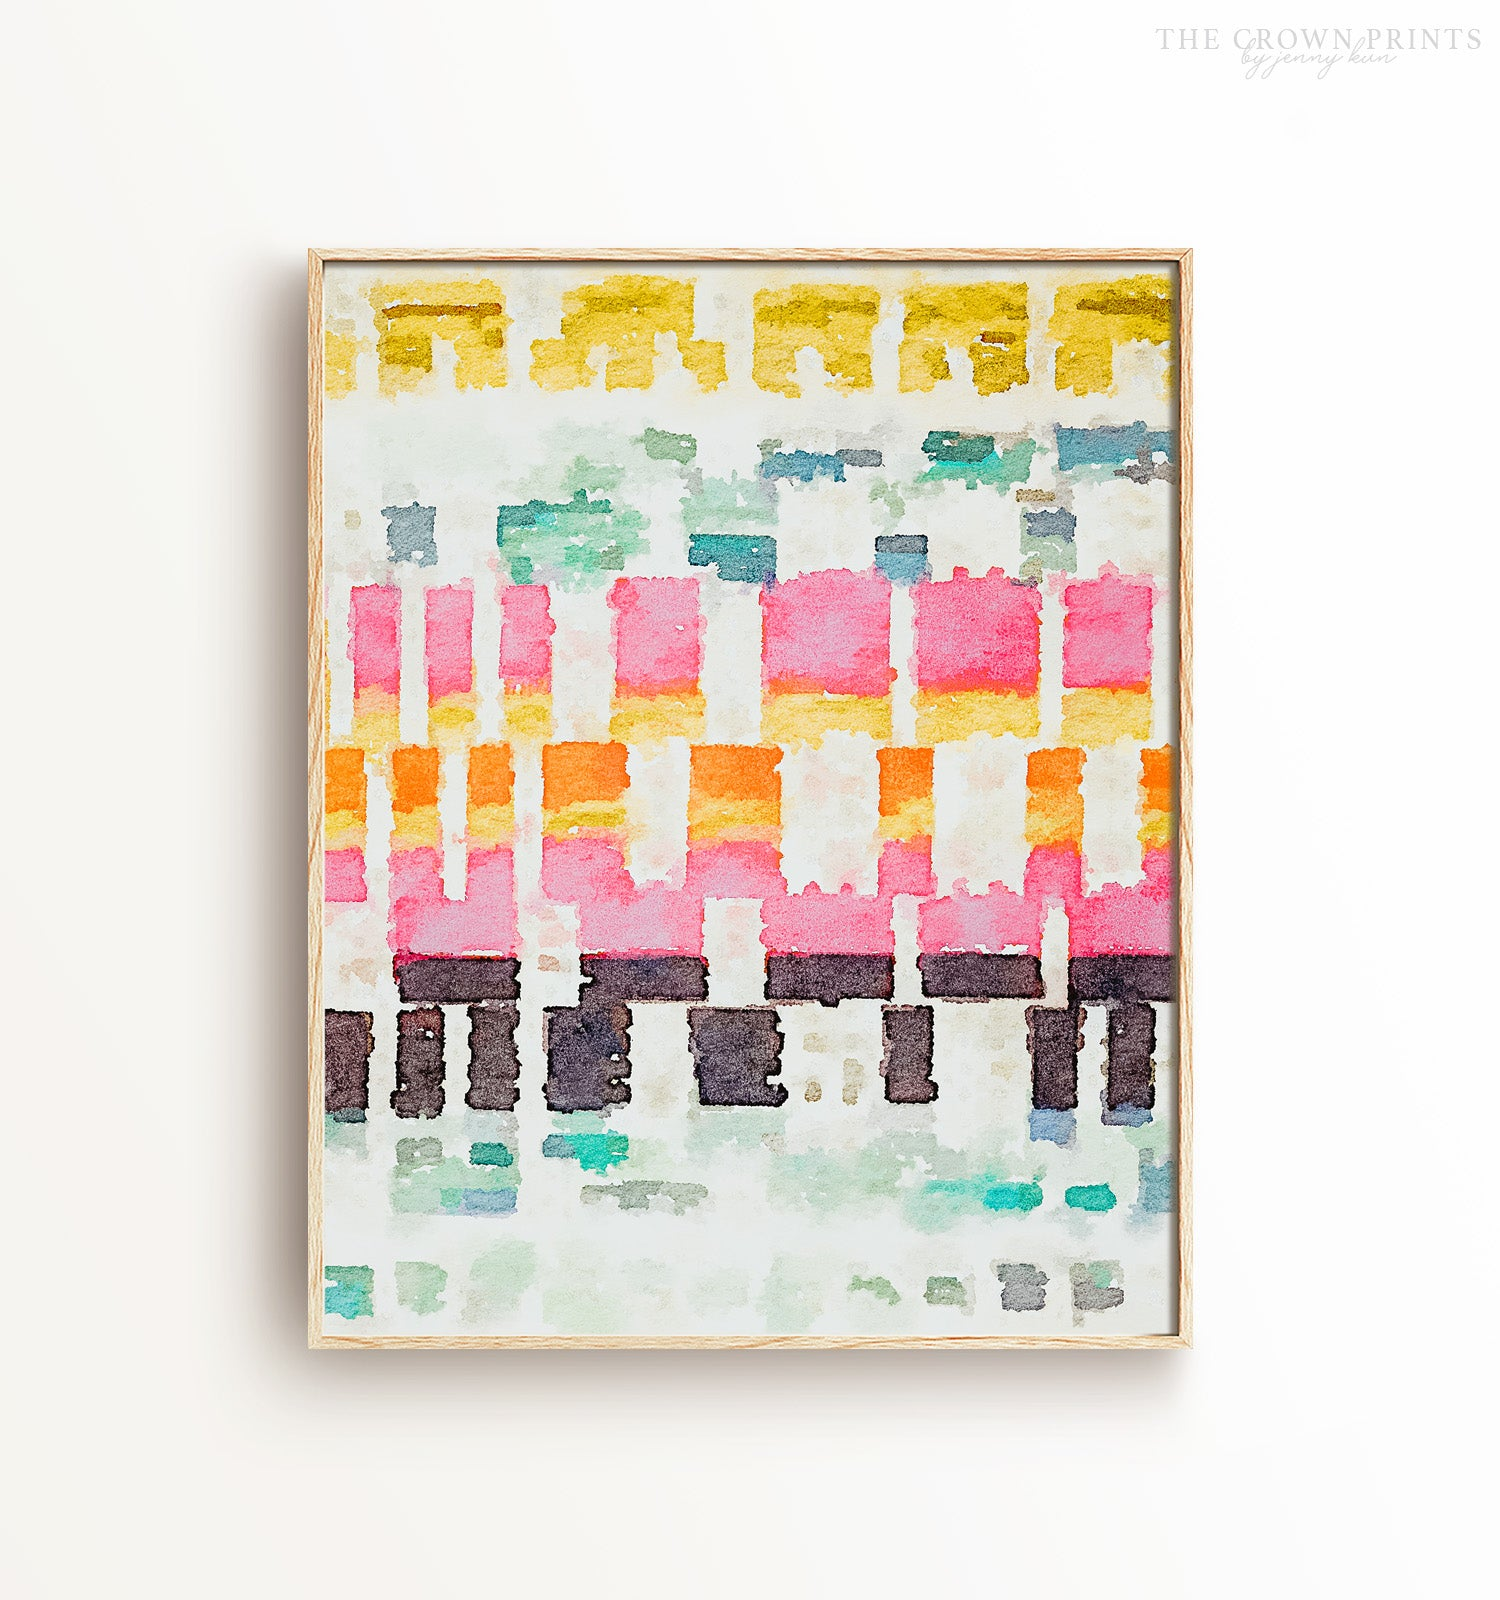 Abstract watercolor stitches - The Crown Prints